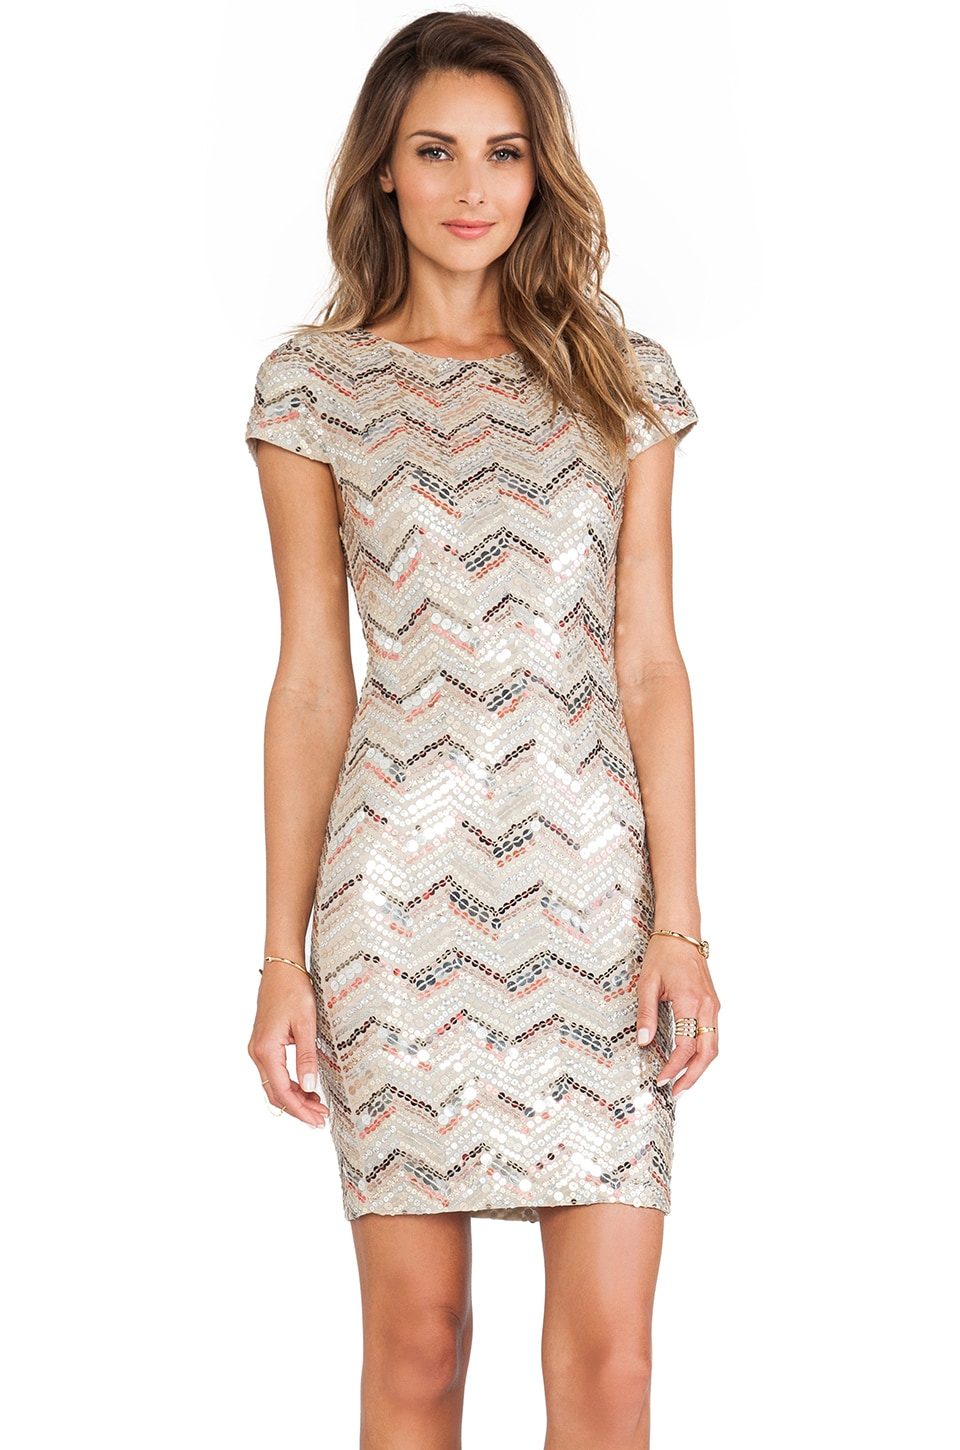 Alice + Olivia Taryn Sequin Cap Sleeve Dress in Nude & Red & Gold